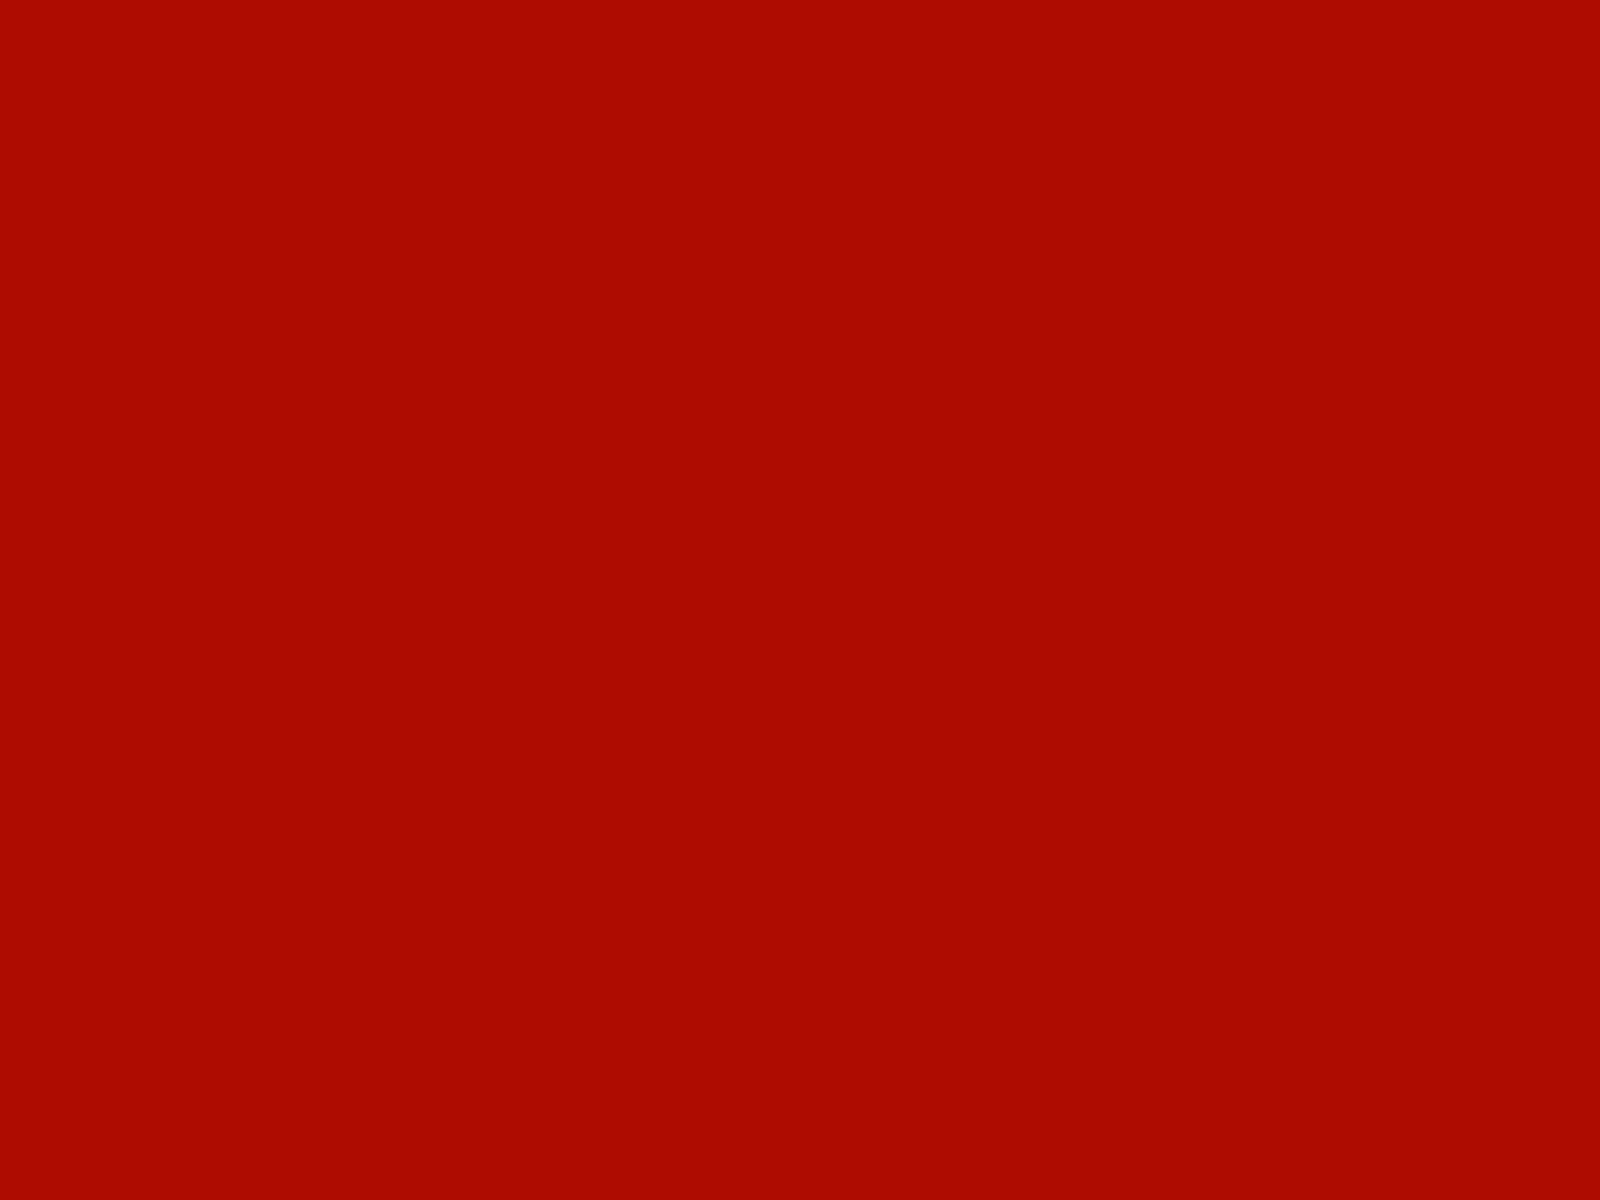 1600x1200 Mordant Red 19 Solid Color Background